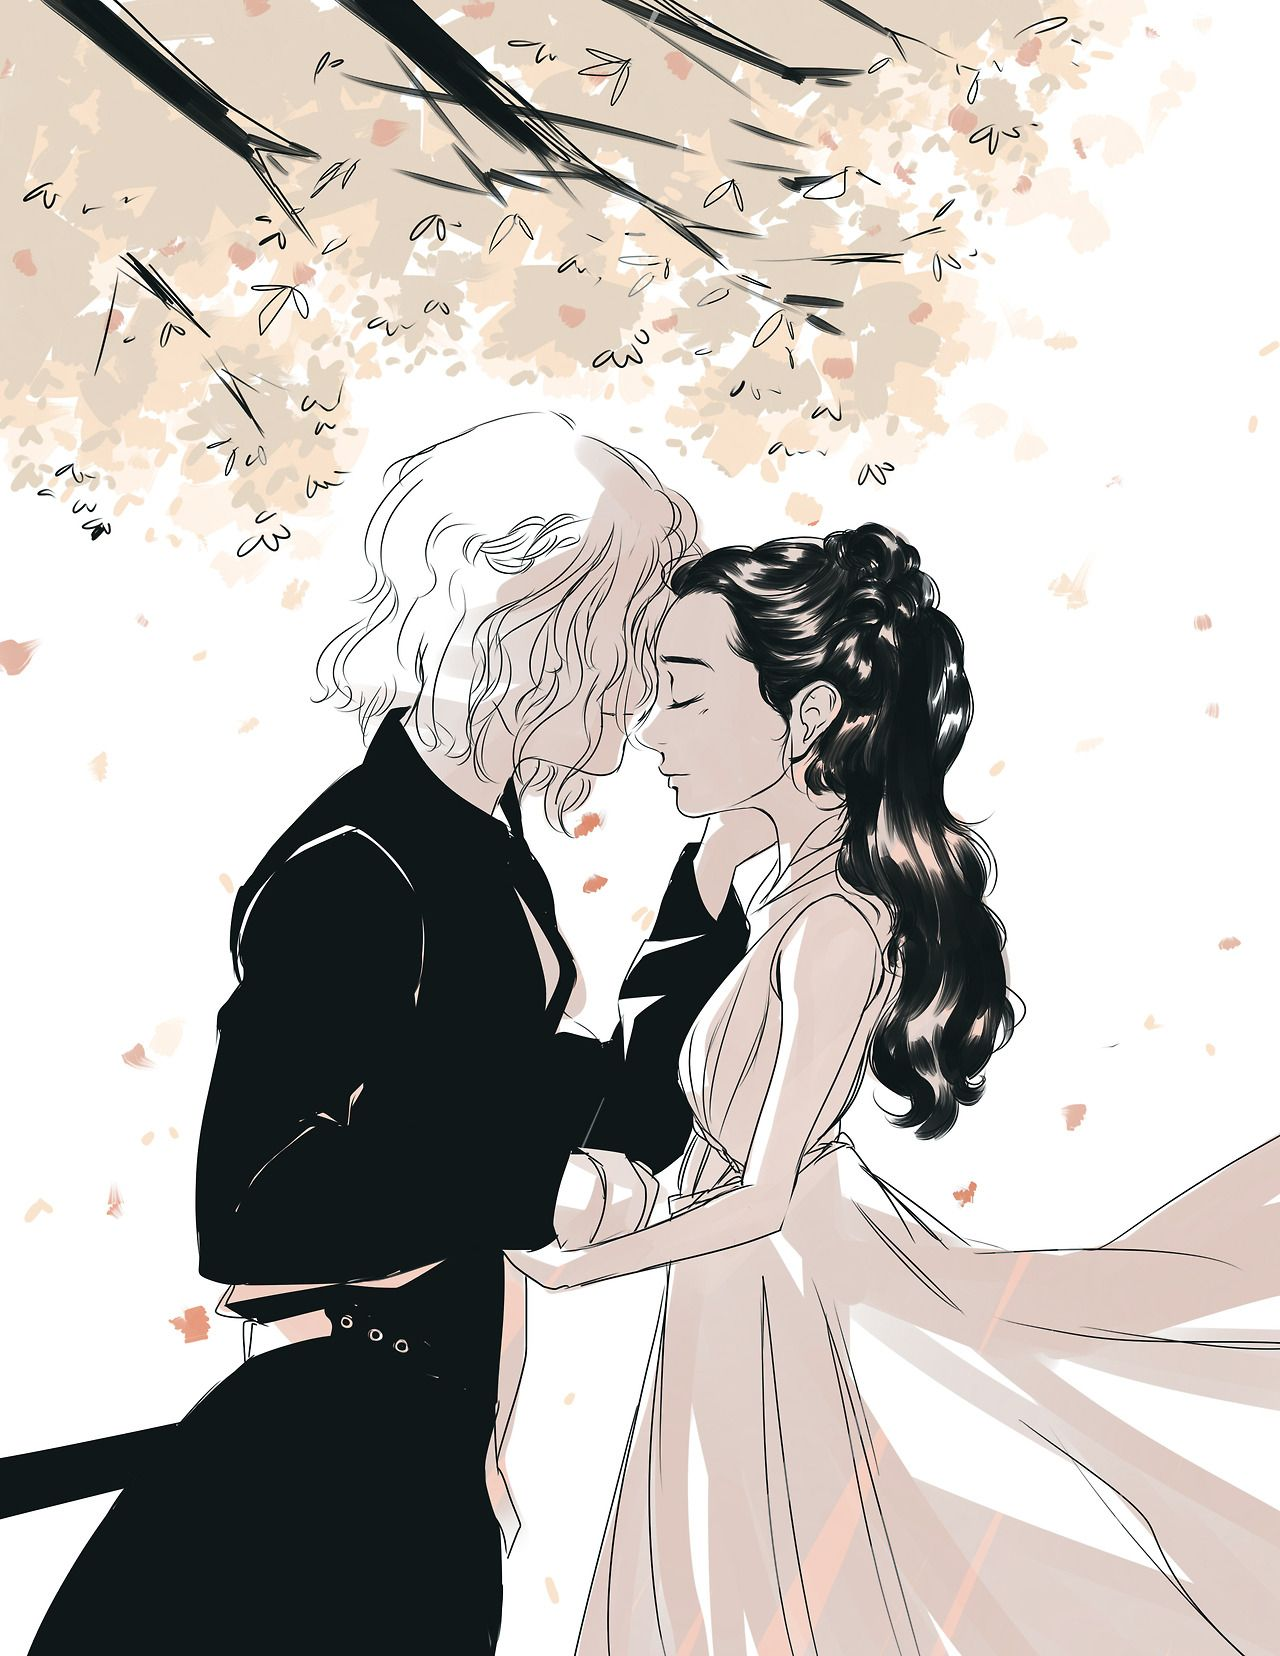 Prince Rhaegar loved his Lady Lyanna, and thousands died for